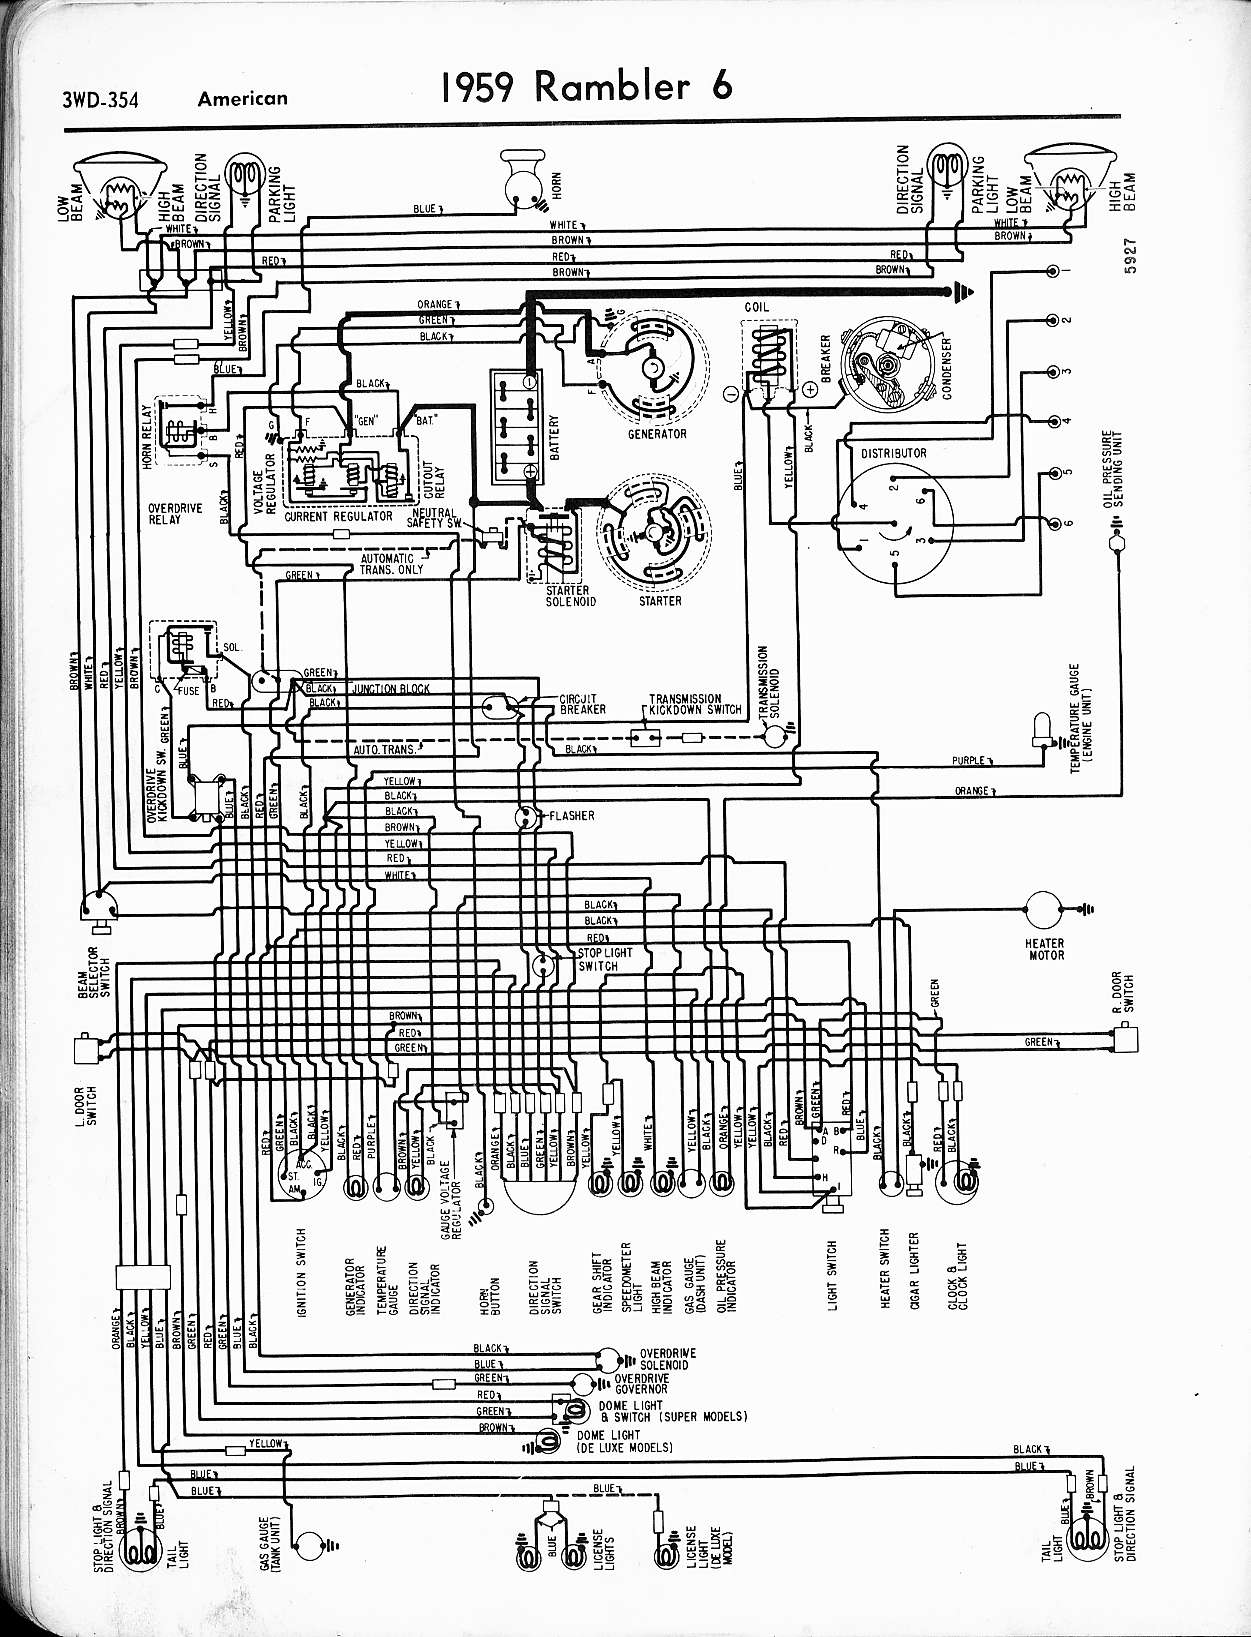 hight resolution of rambler wiring diagrams the old car manual project manual car diagram car manual diagram